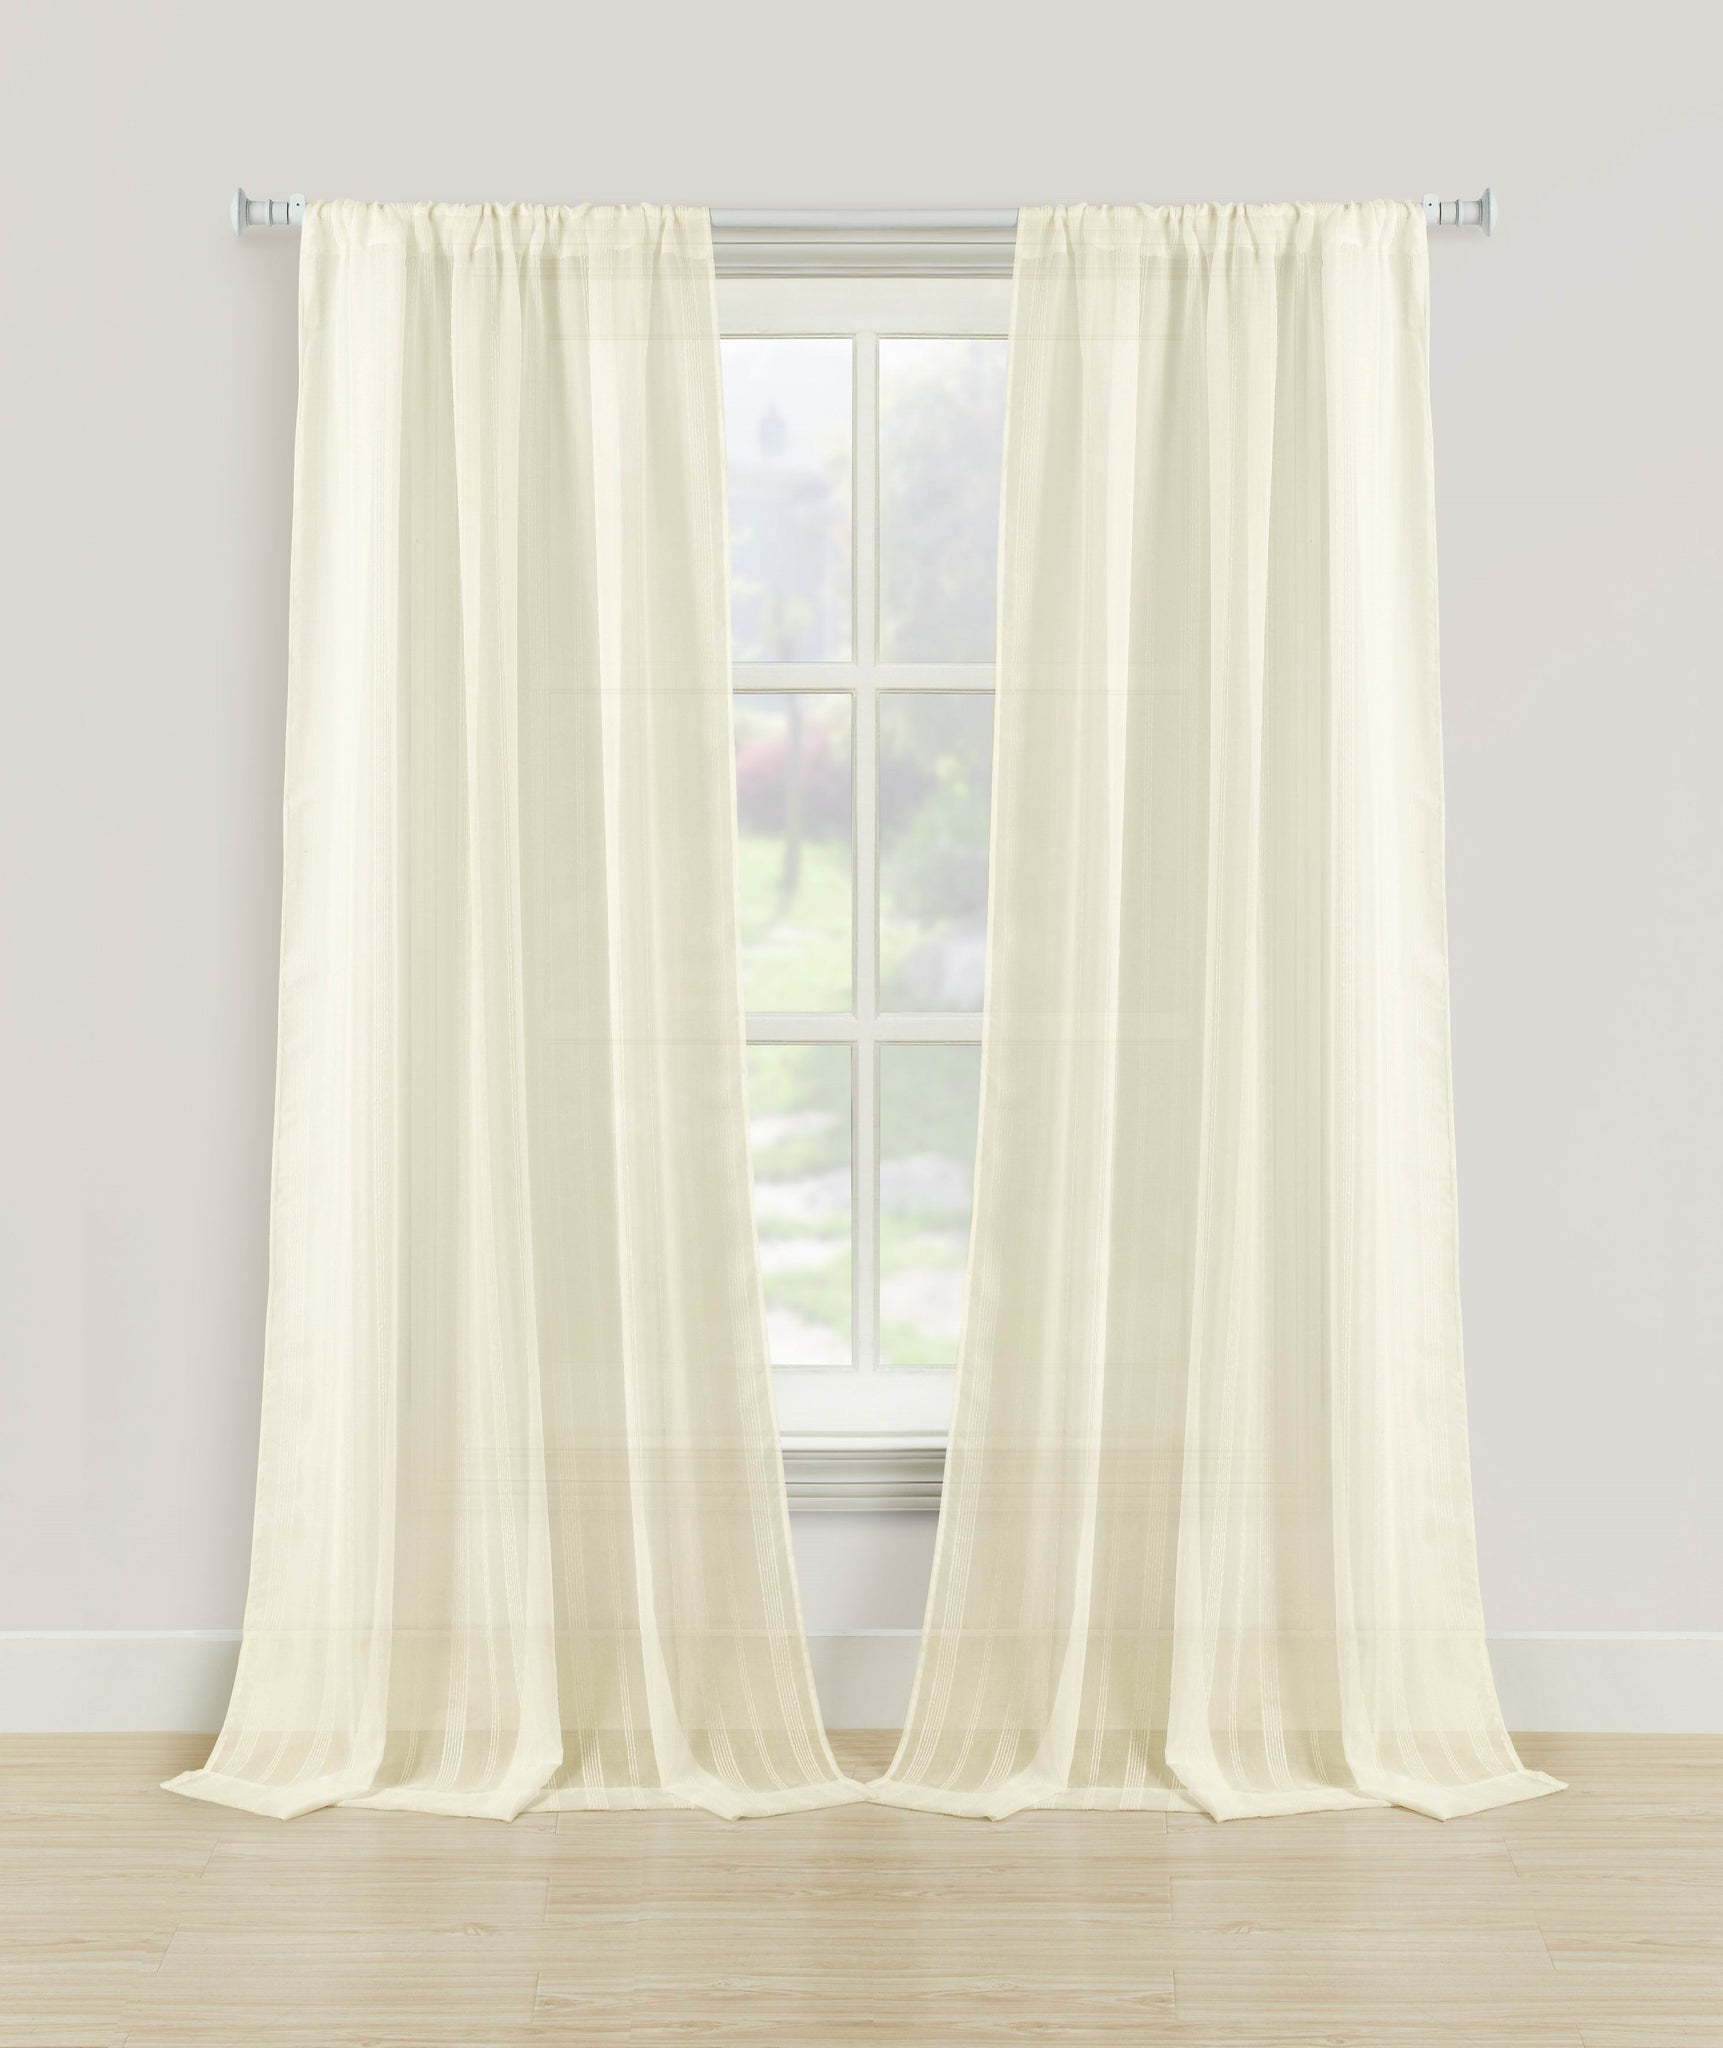 Knitted Sheer Rod Pocket Panel - 052x063 Ivory C39383- Marburn Curtains